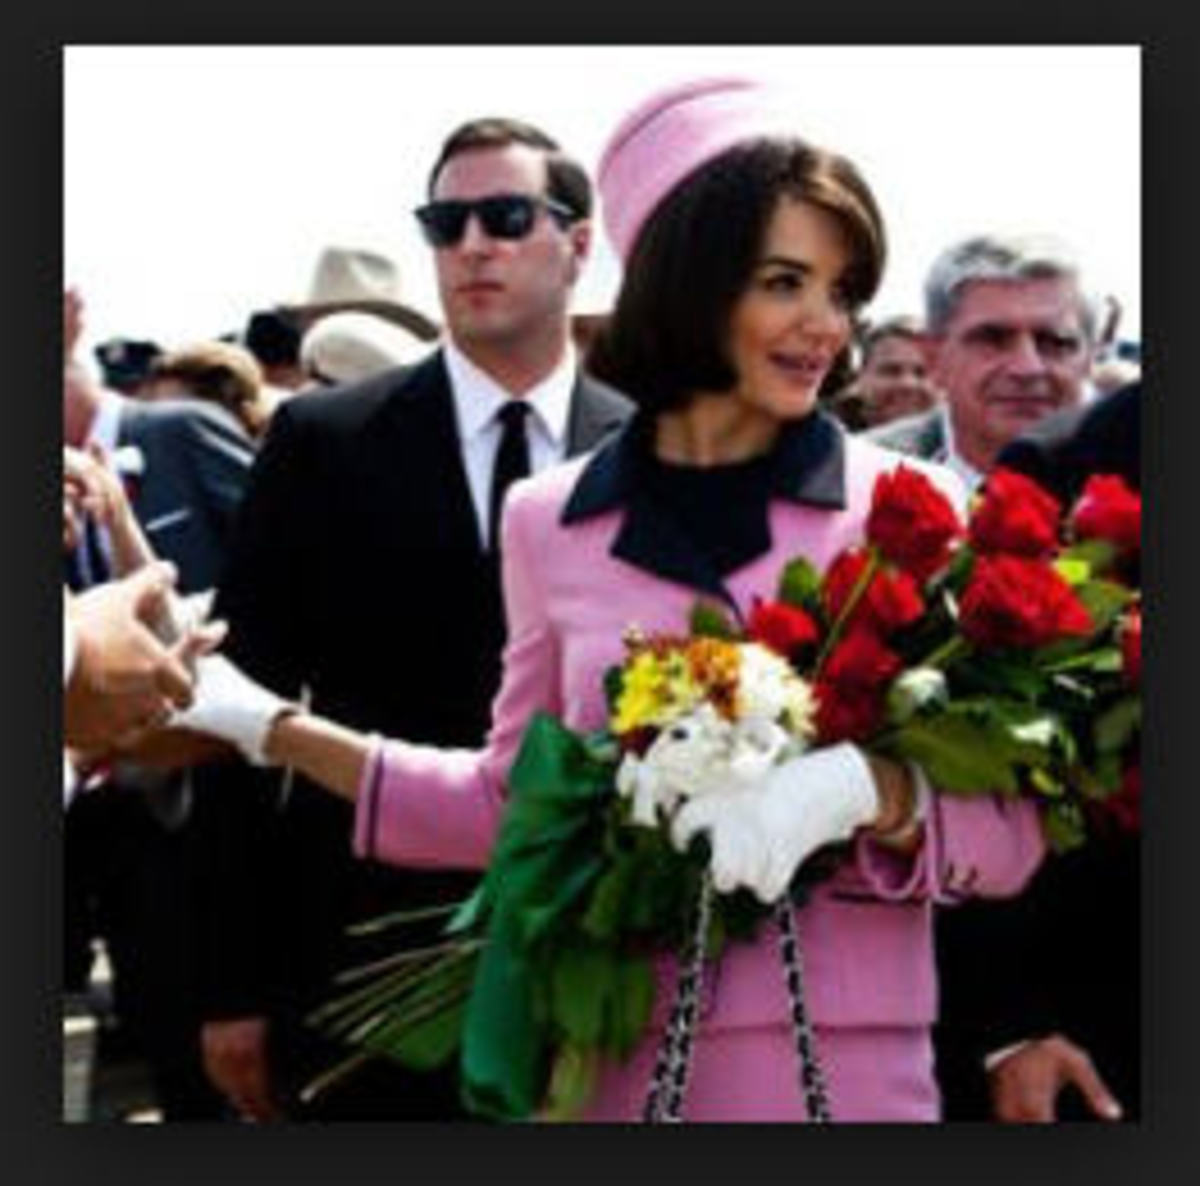 that-mysterious-pink-chanel-suit-of-jacqueline-kennedy